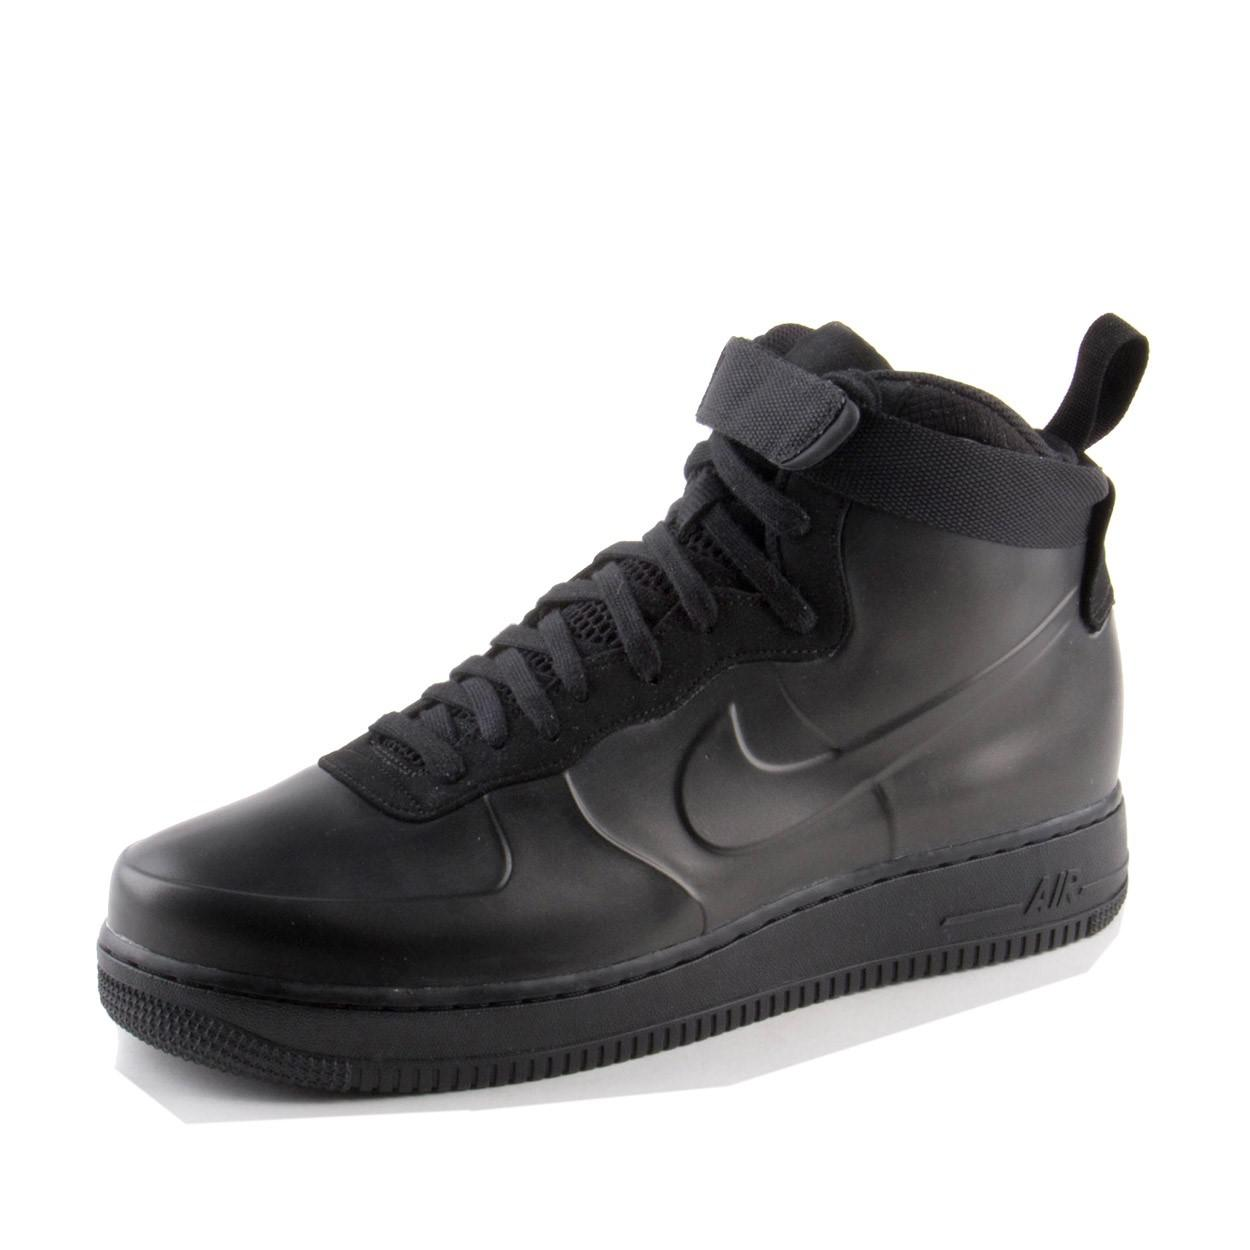 0237bf6df3ff2 Lyst - Nike Air Force 1 Foamposite Cup Black Ah6771-001 in Black for Men